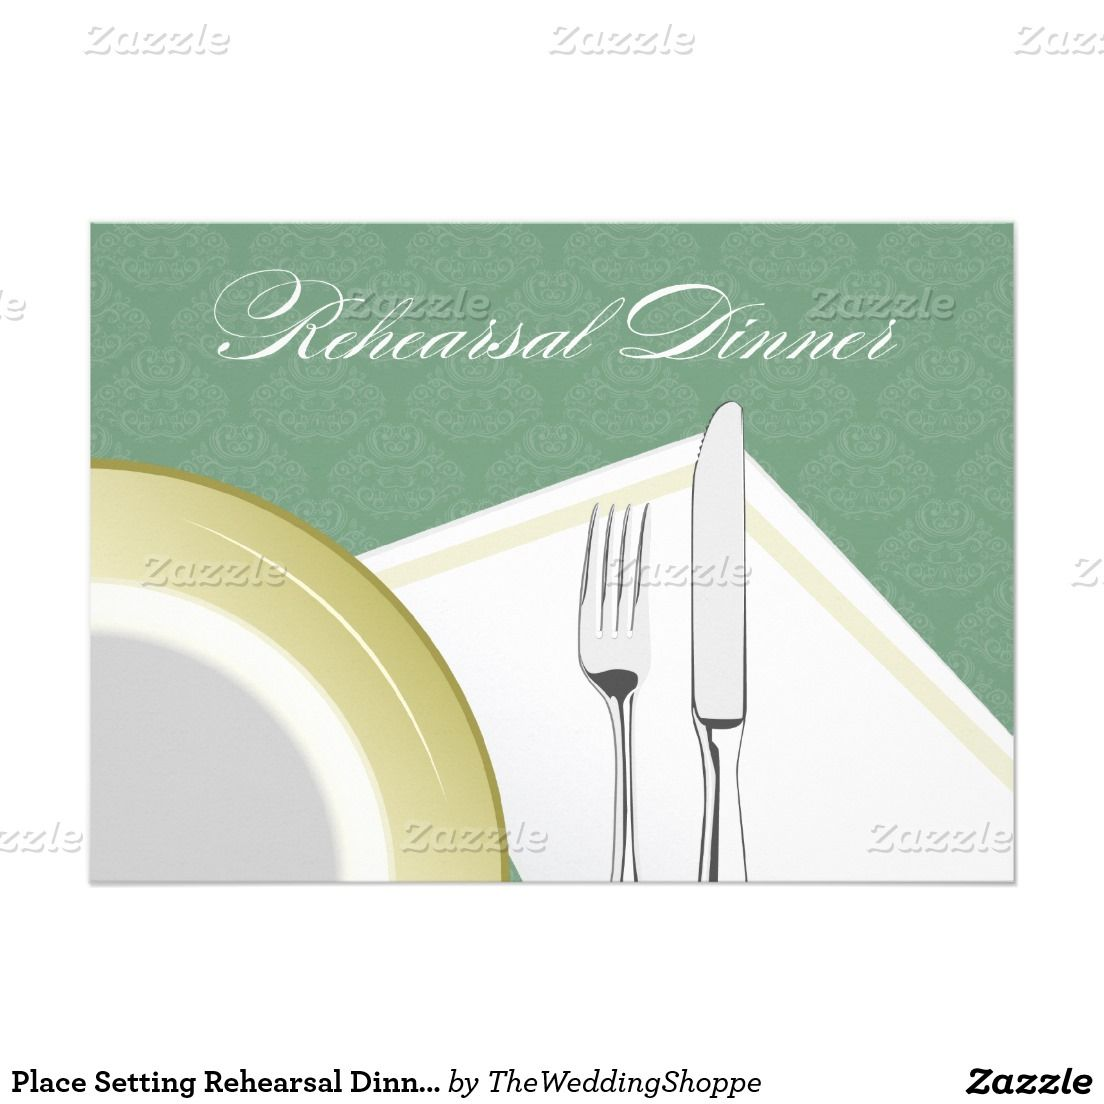 Place Setting Rehearsal Dinner Invitation (green)